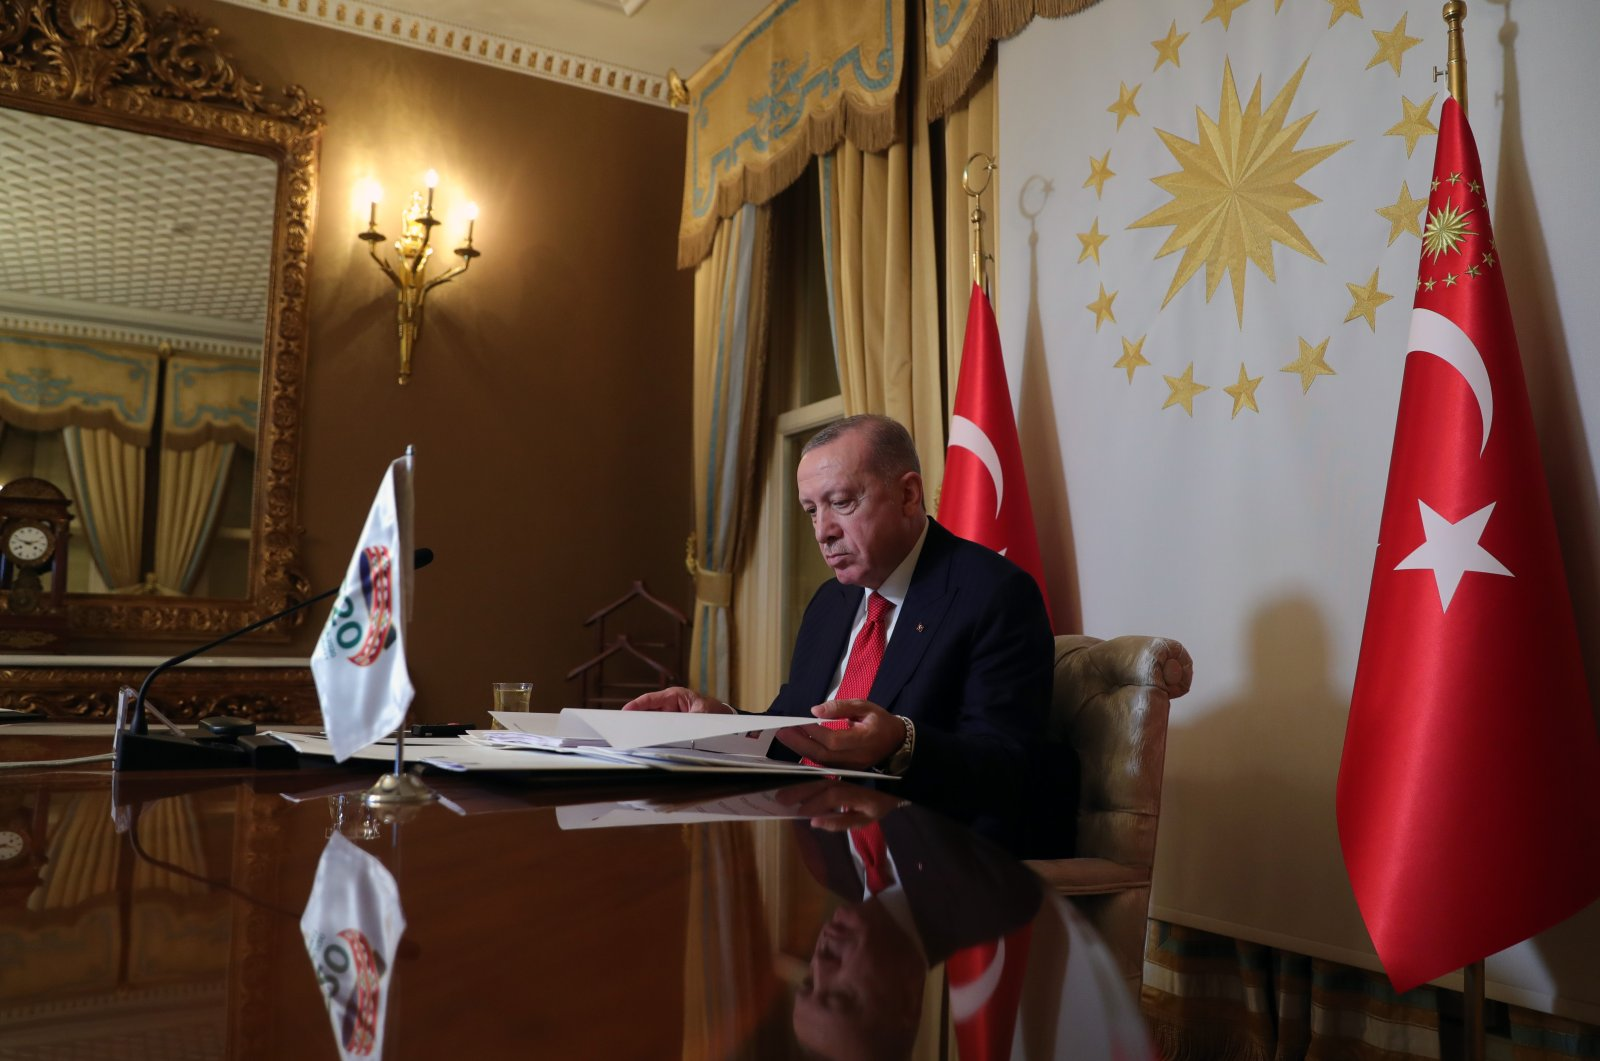 President Recep Tayyip Erdoğan prepares to attend the G-20 Leaders Summit, held online this year due to the coronavirus pandemic, in the Vahdettin Mansion, Istanbul, Turkey, Nov. 21, 2020. (AA Photo)